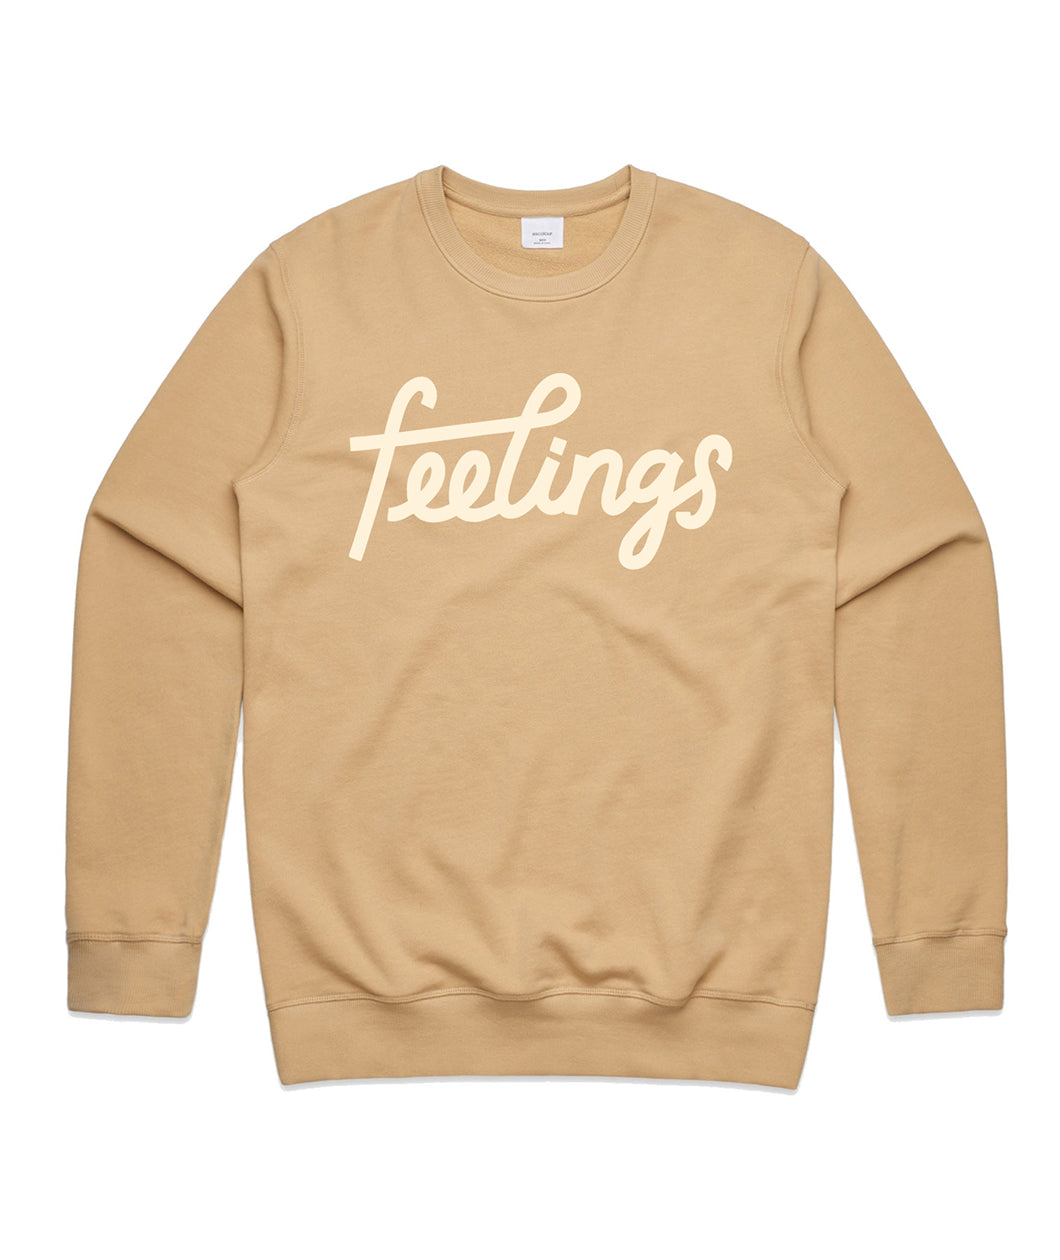 Feelings Crewneck Sweatshirt